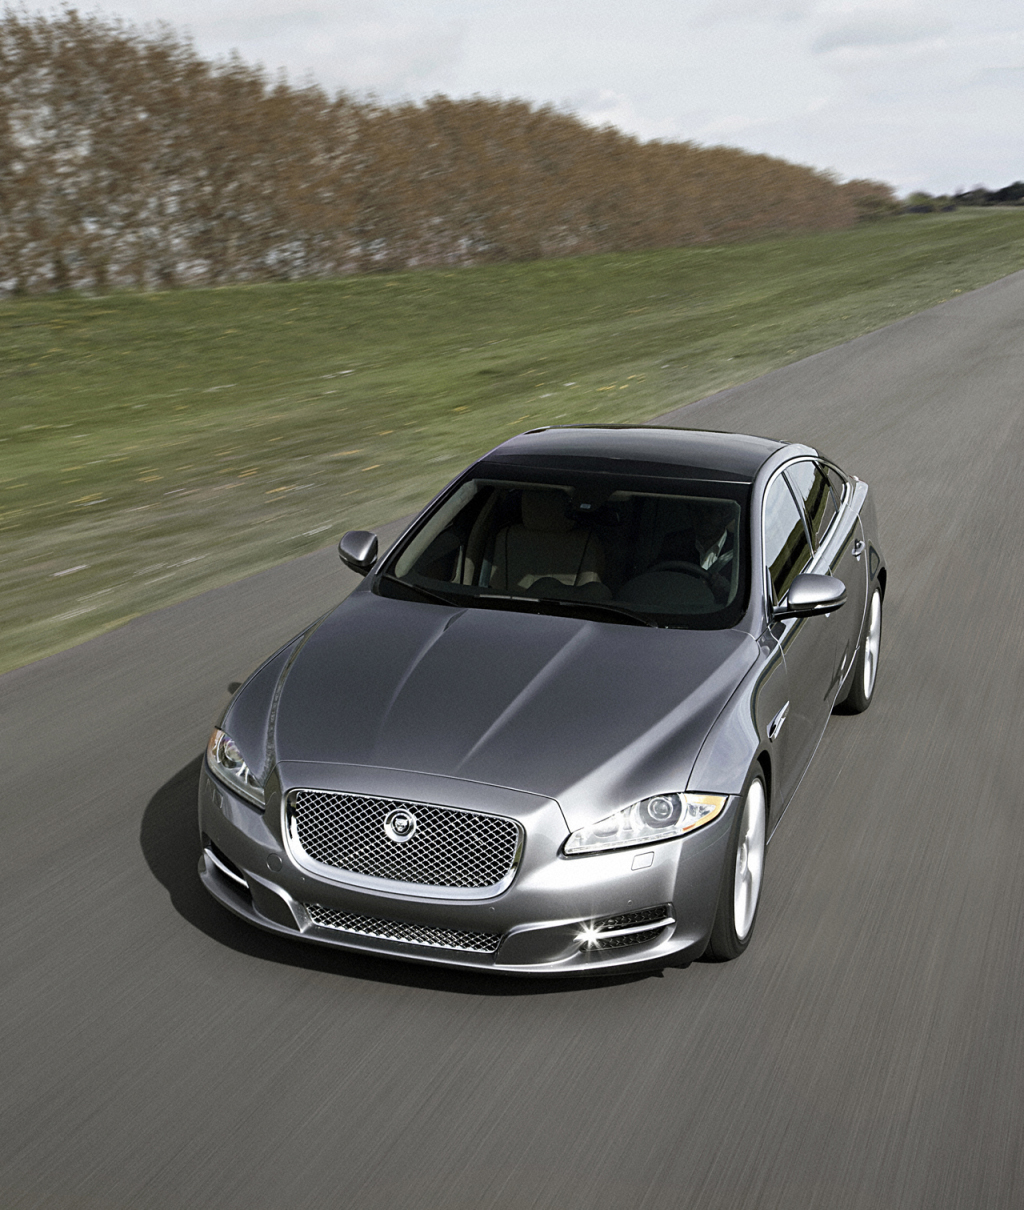 2010 Jaguar Coupe: 2010 Jaguar XJ Official Details, Photos And Prices